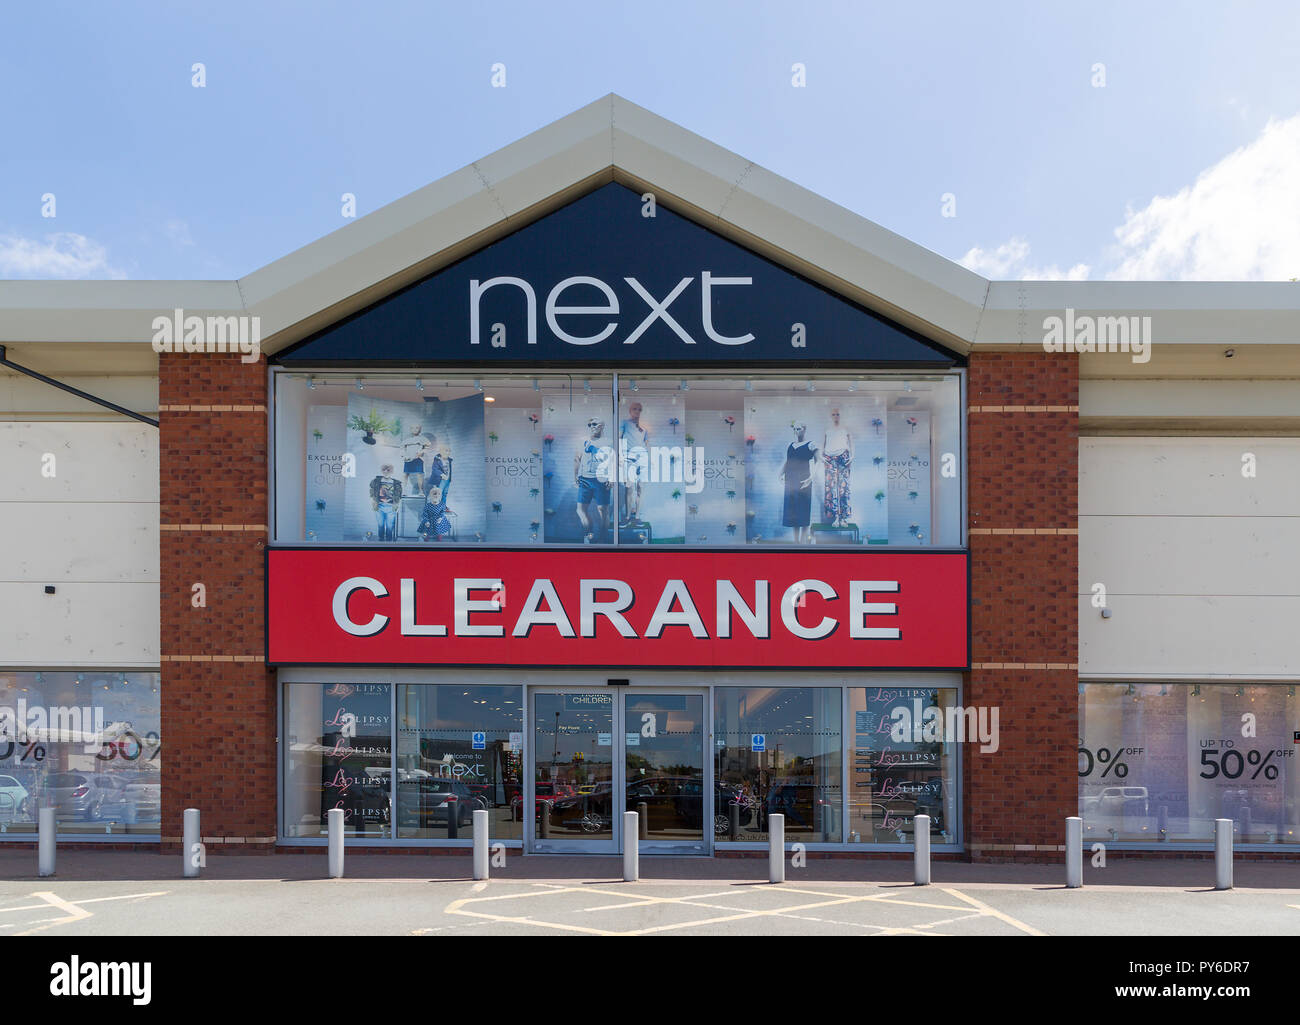 Furniture Retail Products High Resolution Stock Photography And Images Alamy